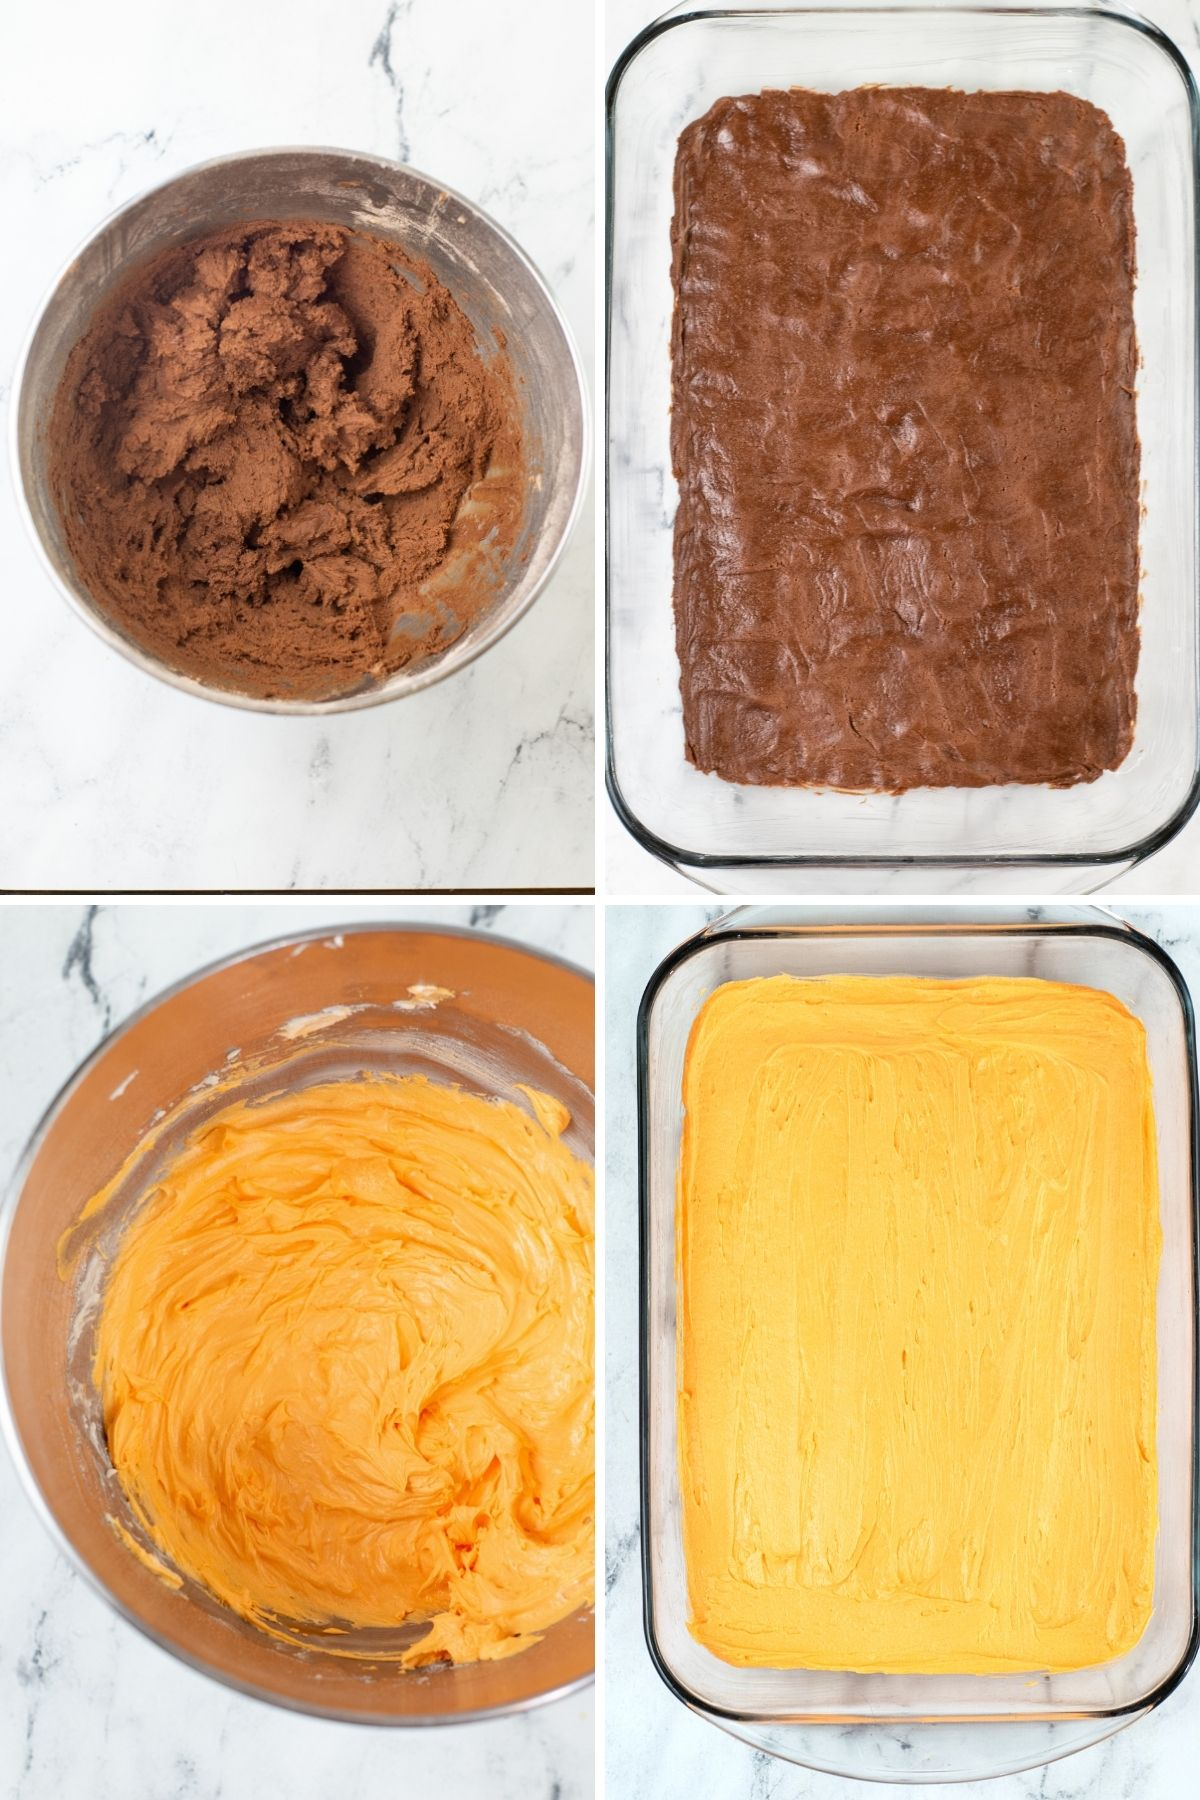 how to make steps: cookie ingredients mixed in metal bowl: baked in a clear 9x13 pan: orange buttercream mixed in metal bowl, spread on top of cookie in clear baking dish